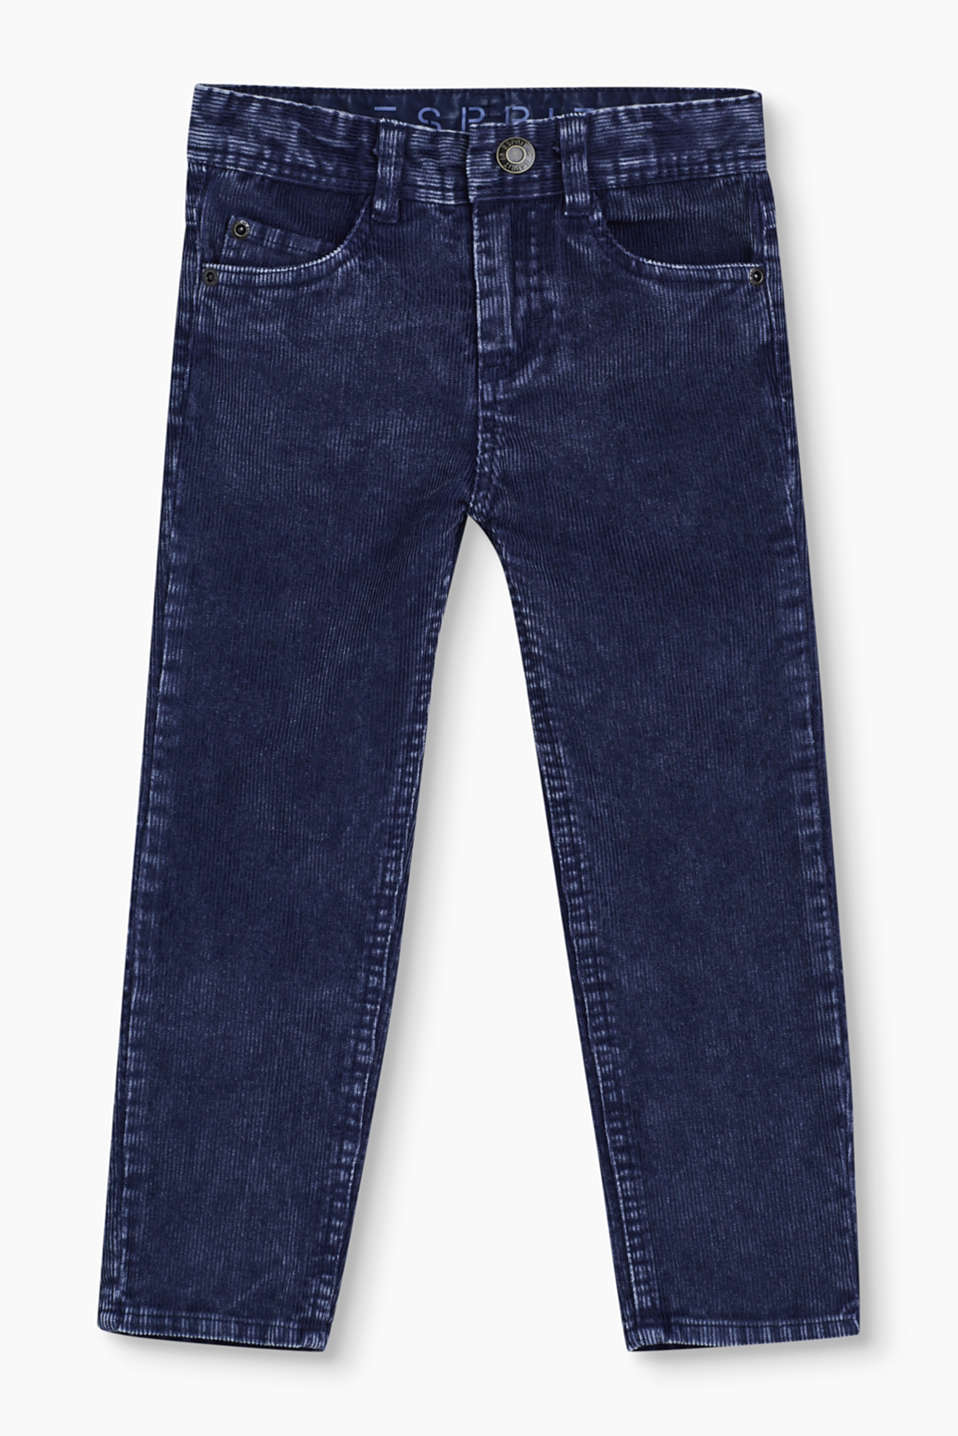 Esprit - Casual corduroy trousers in 100% cotton